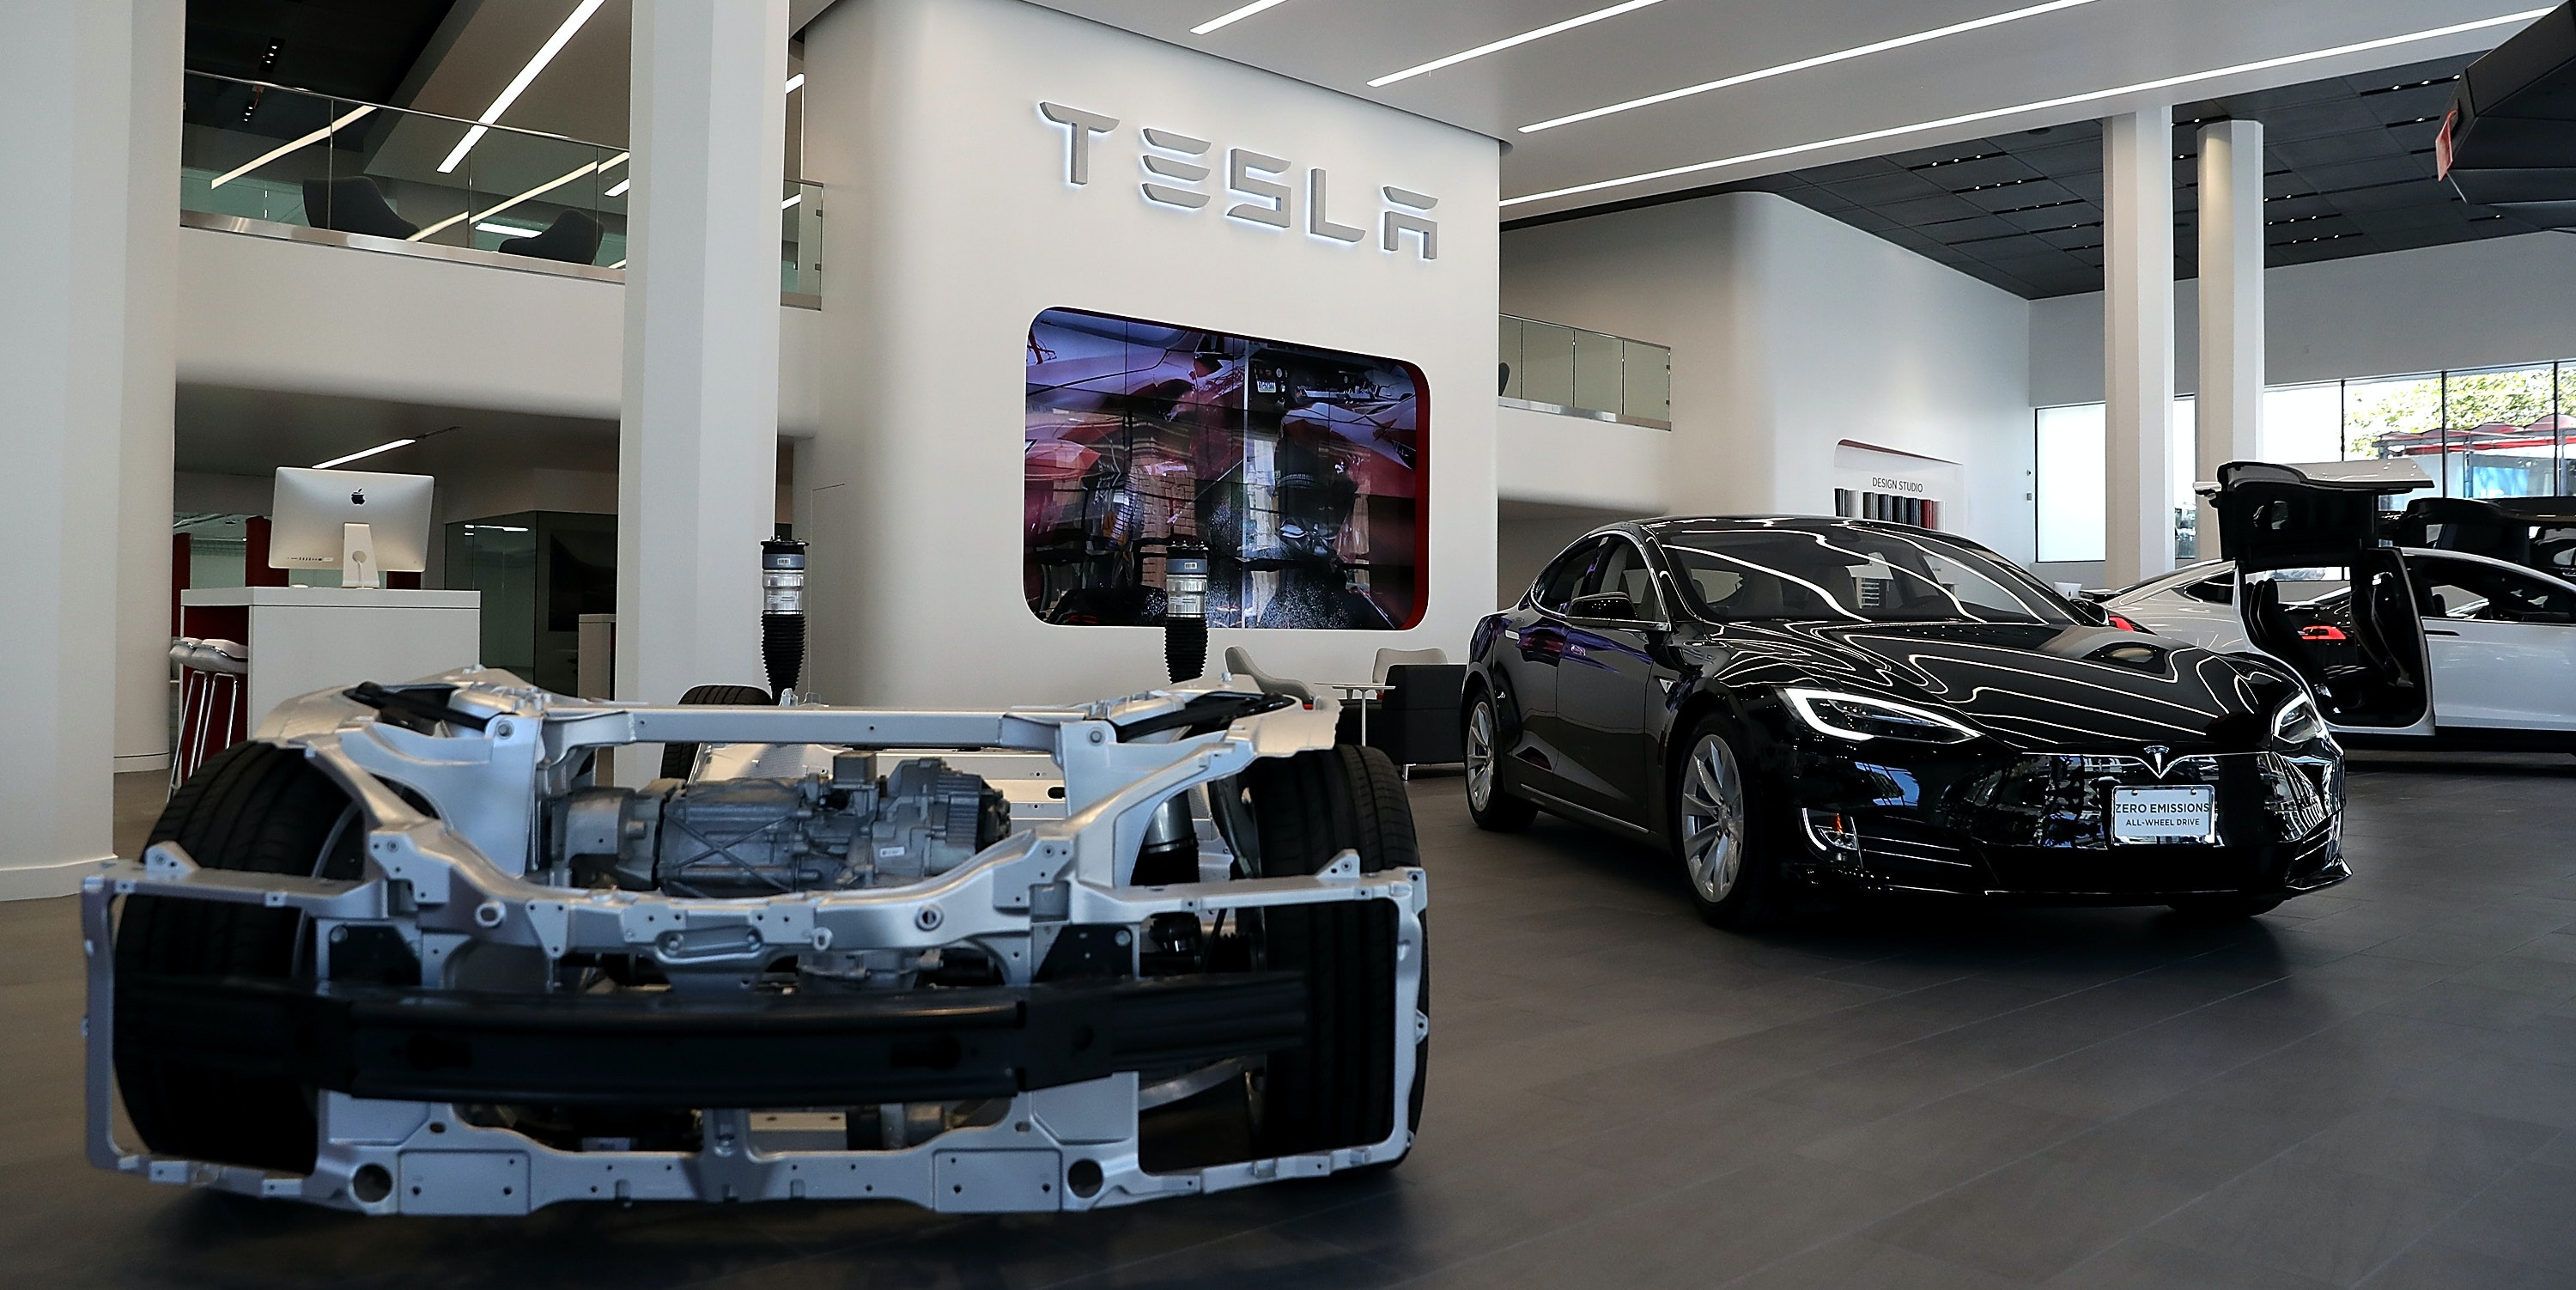 A Tesla Model S is displayed inside of the new Tesla flagship facility in San Francisco, California.